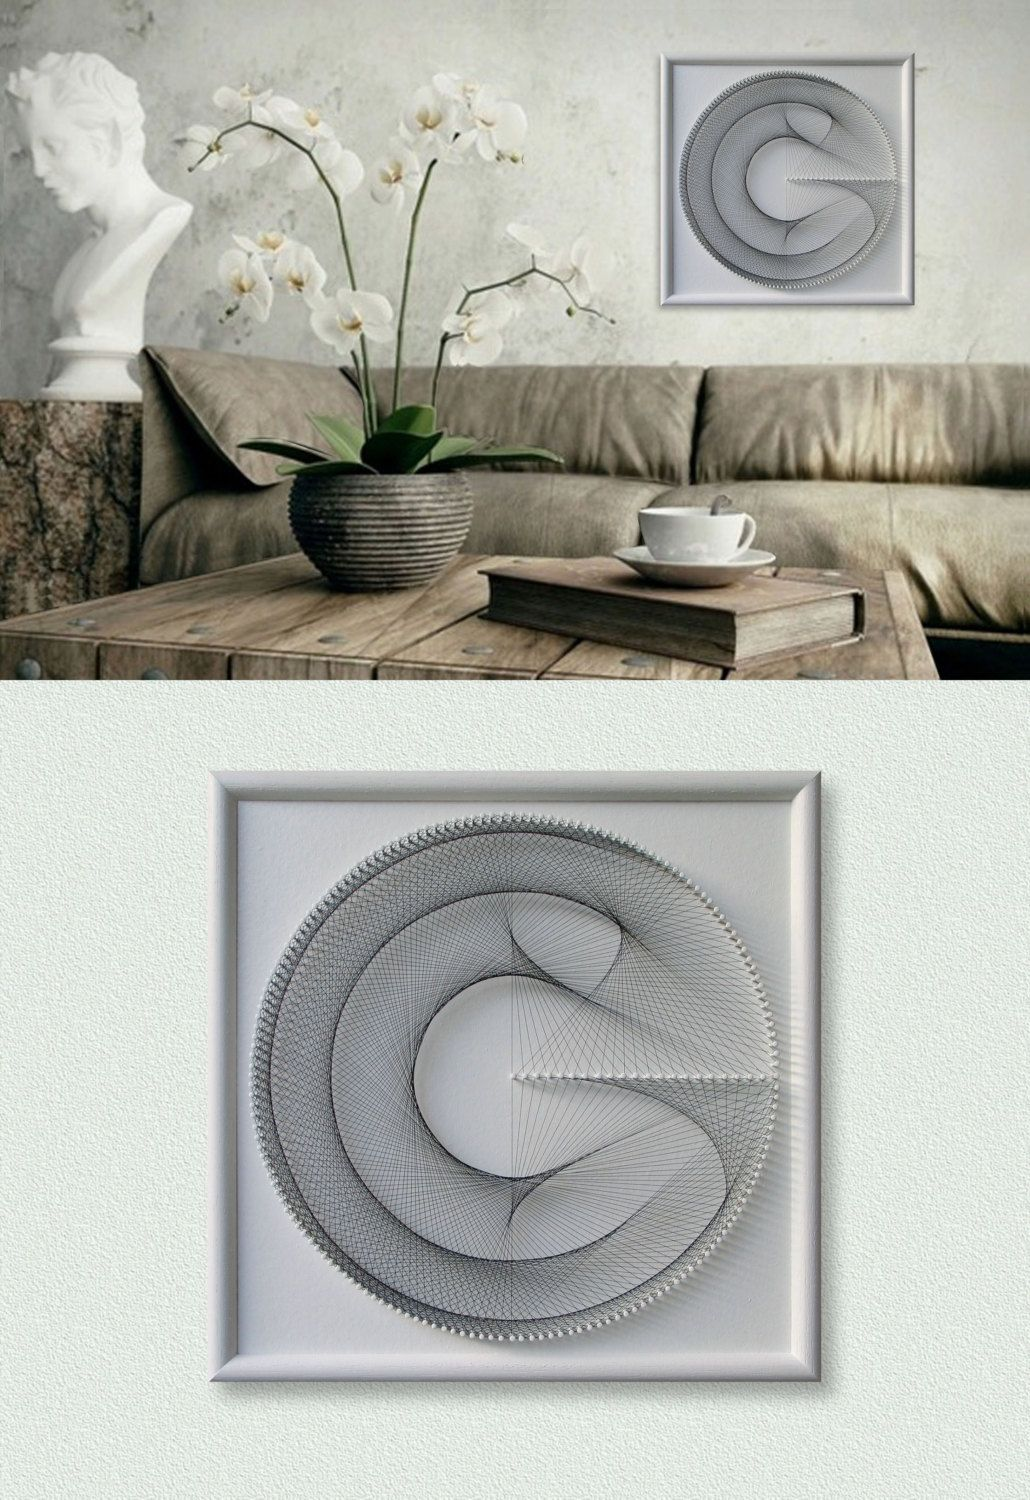 "Home Wall Decor, 3D Modern Abstract String Art, White, Framed 12,6""x12,6"" (32x32cm), ready to hang - pinned by pin4etsy.com"